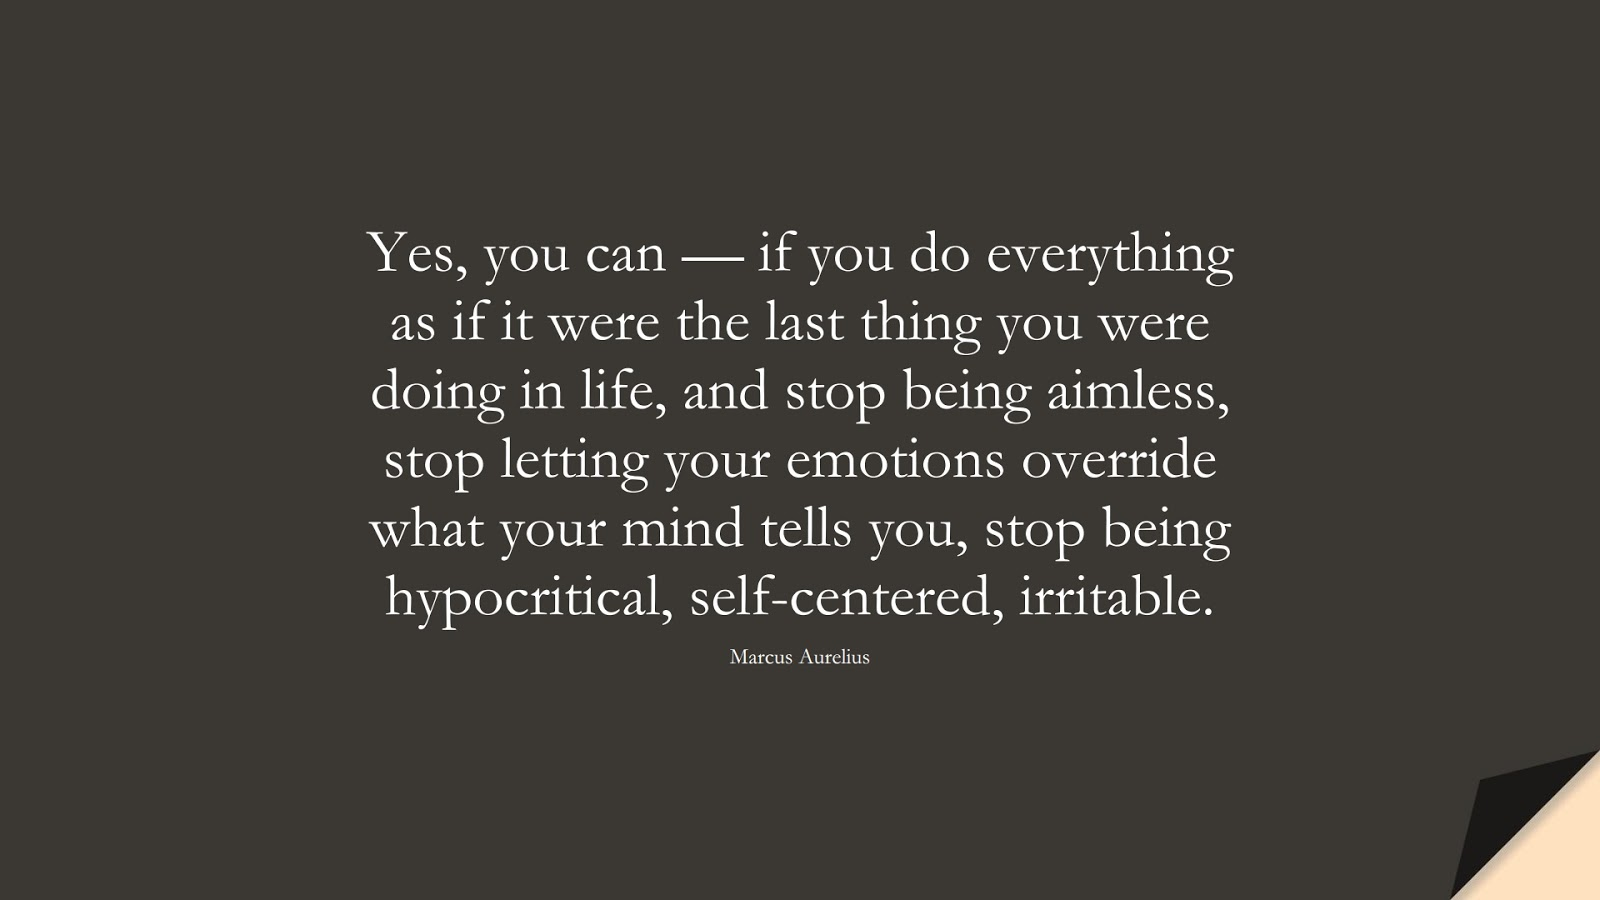 Yes, you can — if you do everything as if it were the last thing you were doing in life, and stop being aimless, stop letting your emotions override what your mind tells you, stop being hypocritical, self-centered, irritable. (Marcus Aurelius);  #StoicQuotes